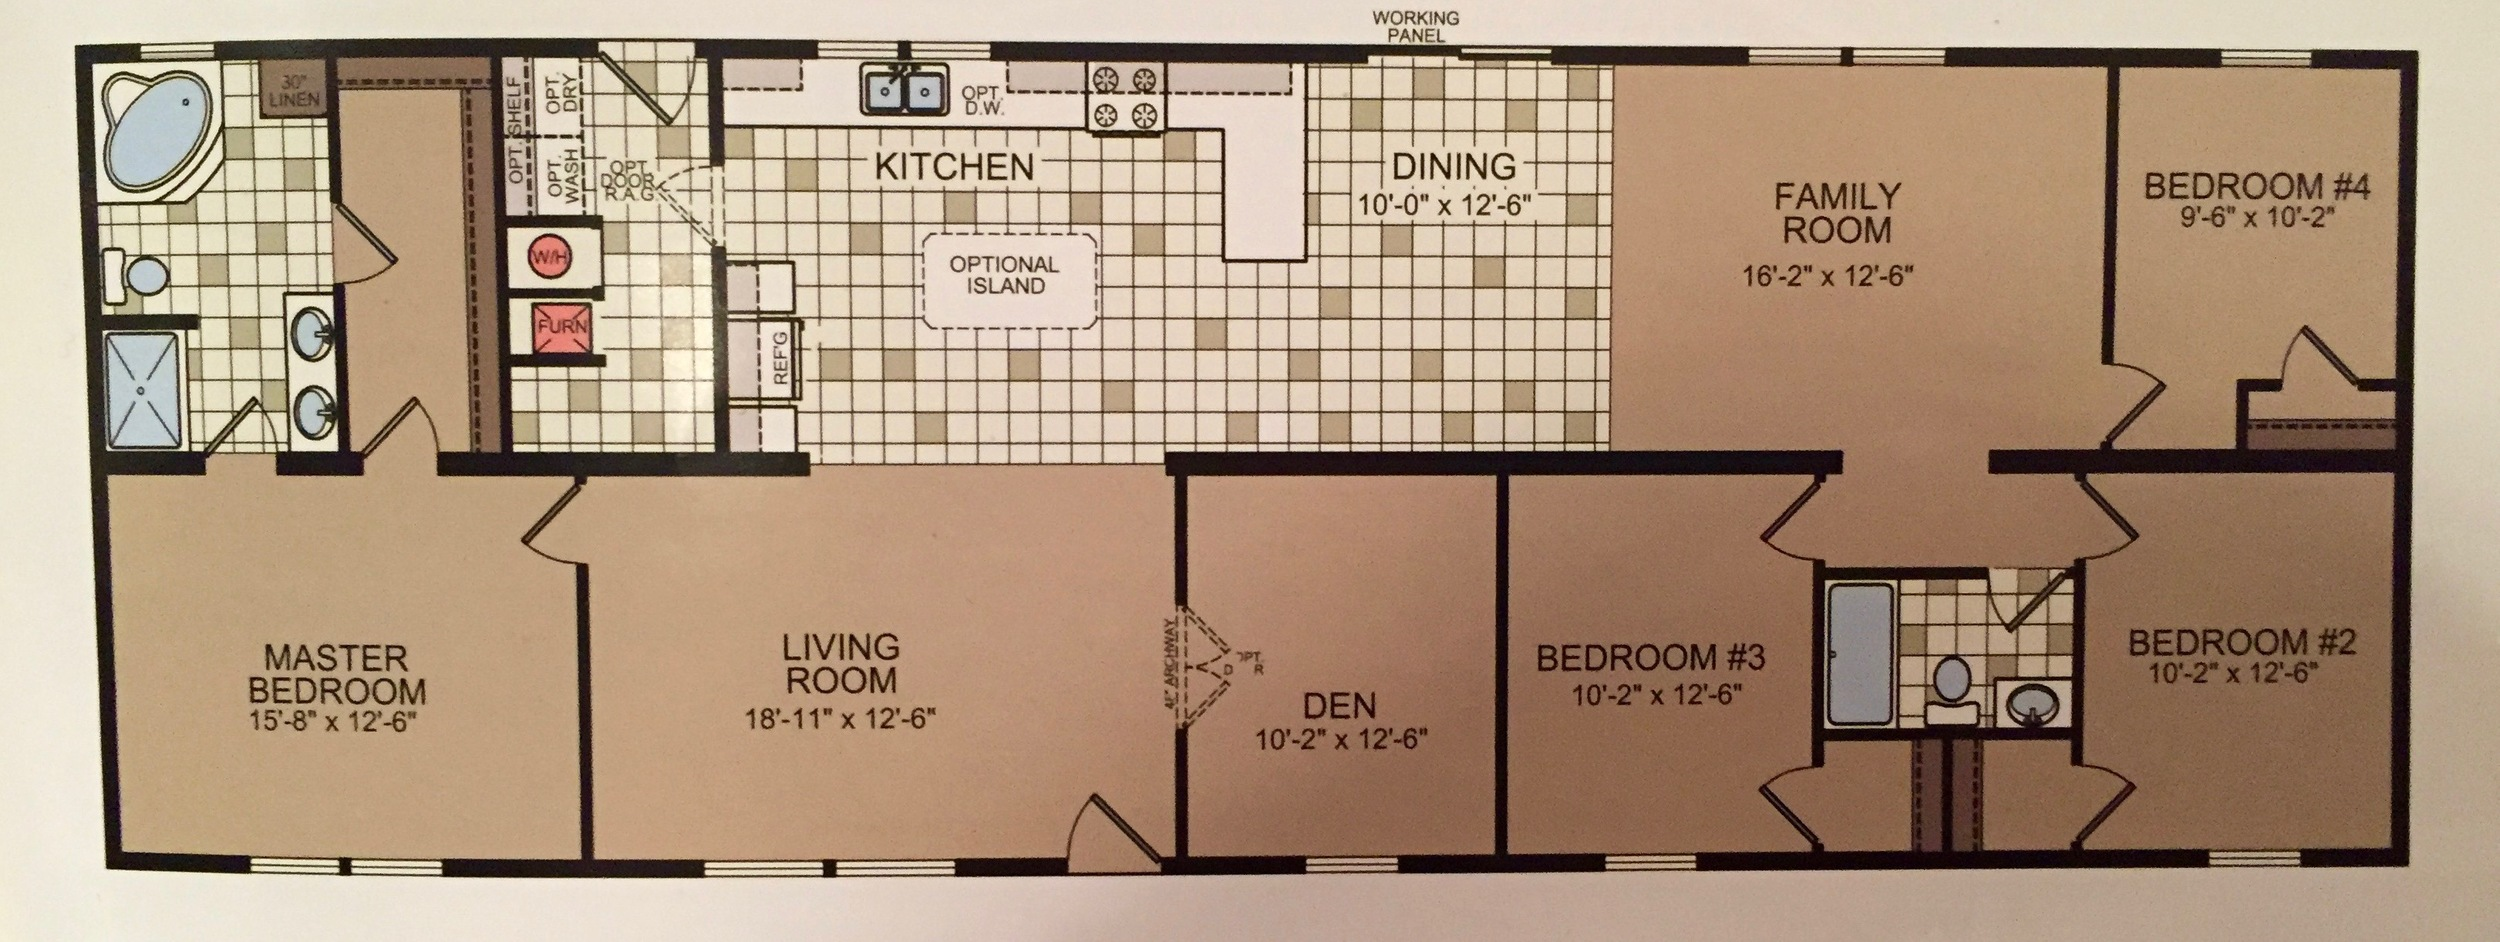 Double-Wide Floor Plan: 5 Bedrooms in 1600 Square Feet ... on double master suite house plans, master bedroom with office floor plans, master bedroom addition plans, bedroom with two master suites house plans, 8 bedroom house plans,